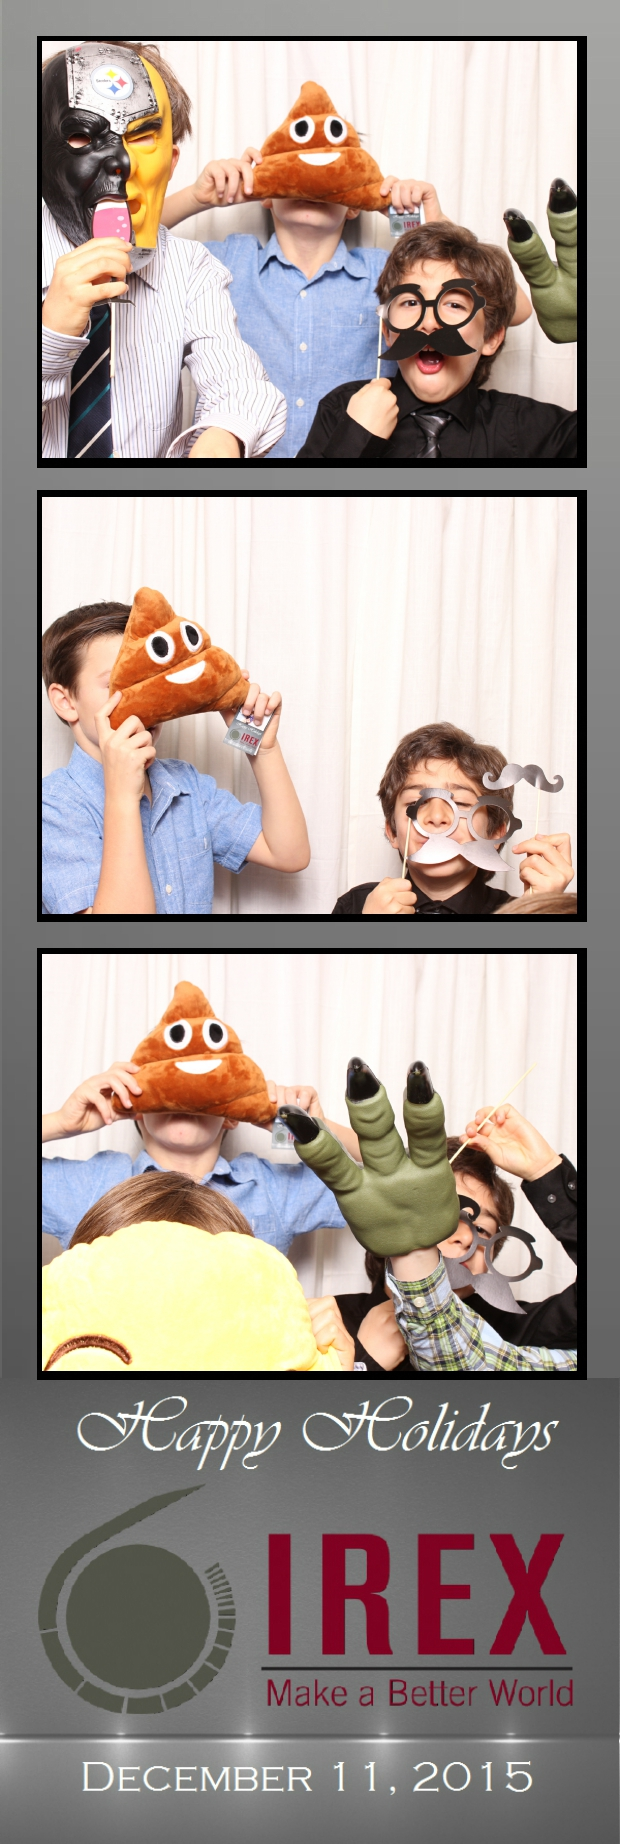 Guest House Events Photo Booth Strips IREX (13).jpg